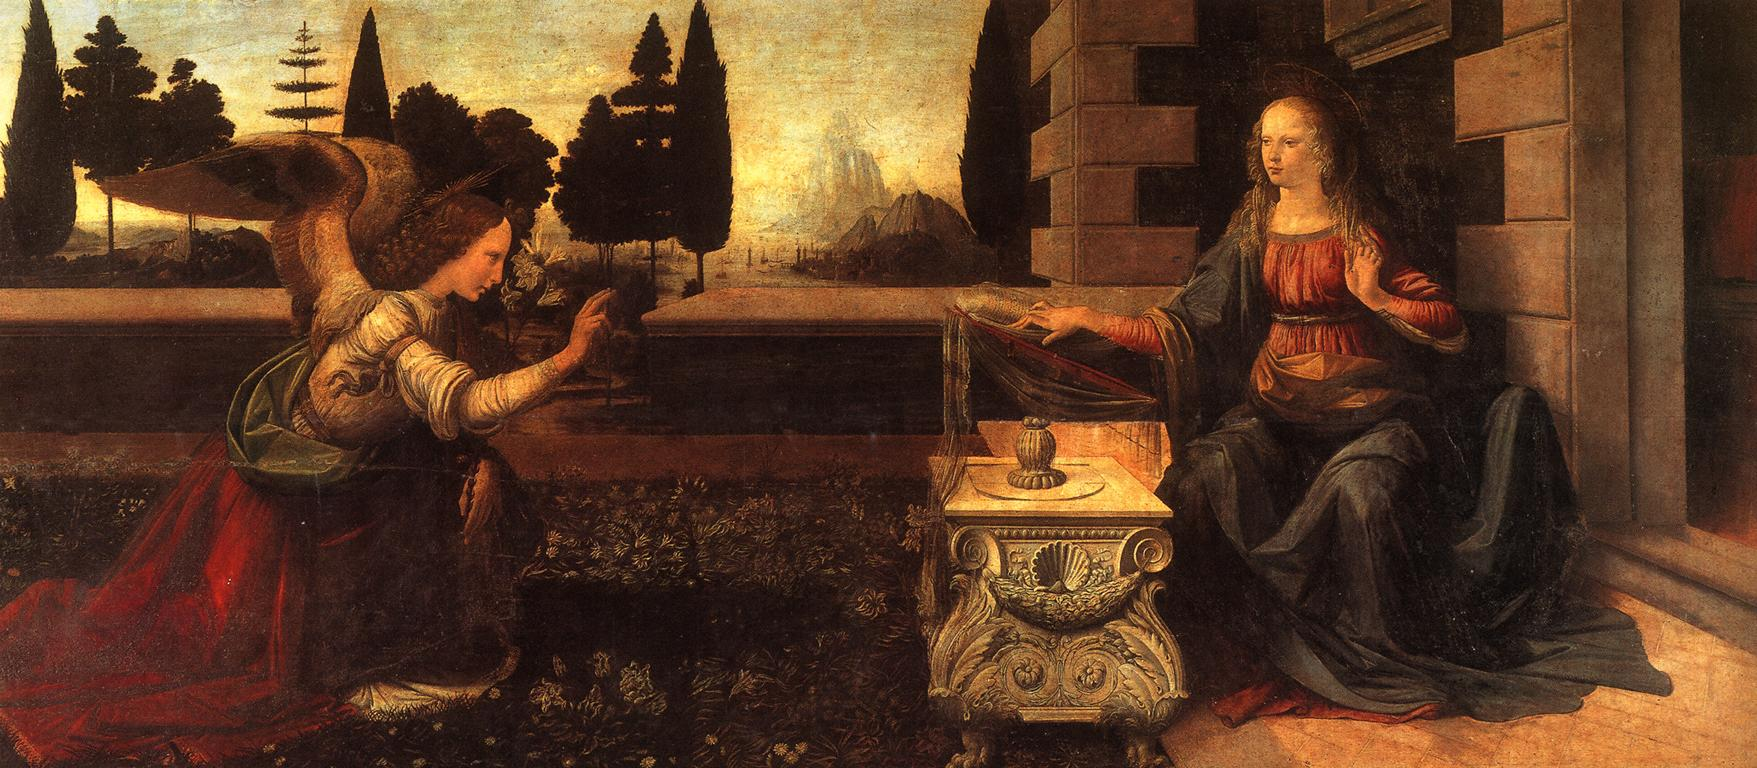 Leonardo Da Vinci--The Annunciation